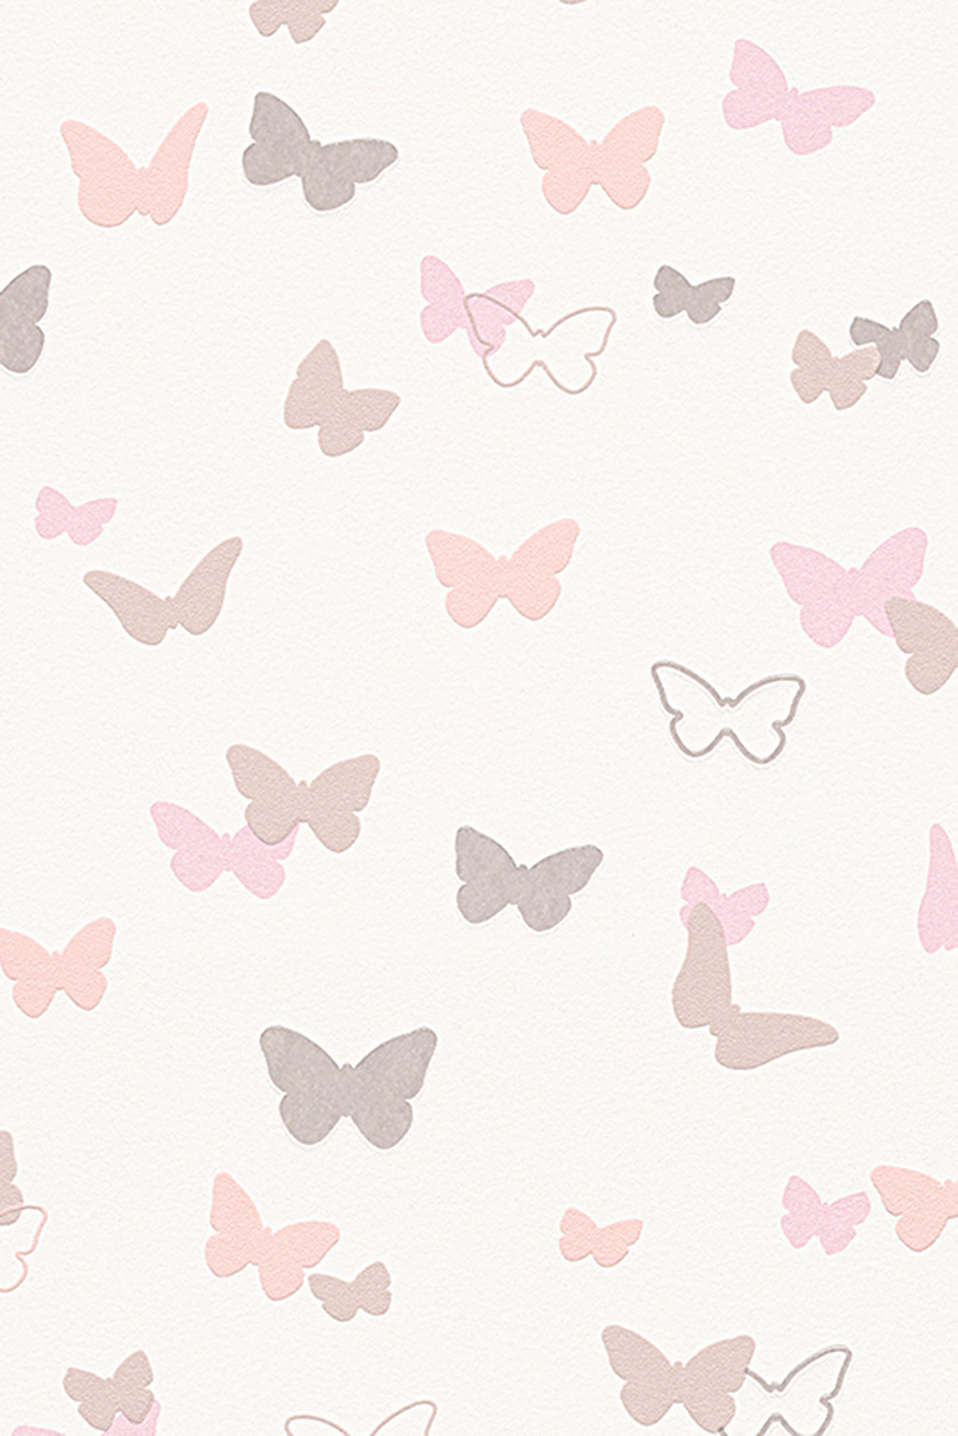 Esprit - Papel pintado Sweet Butterfly Patterned